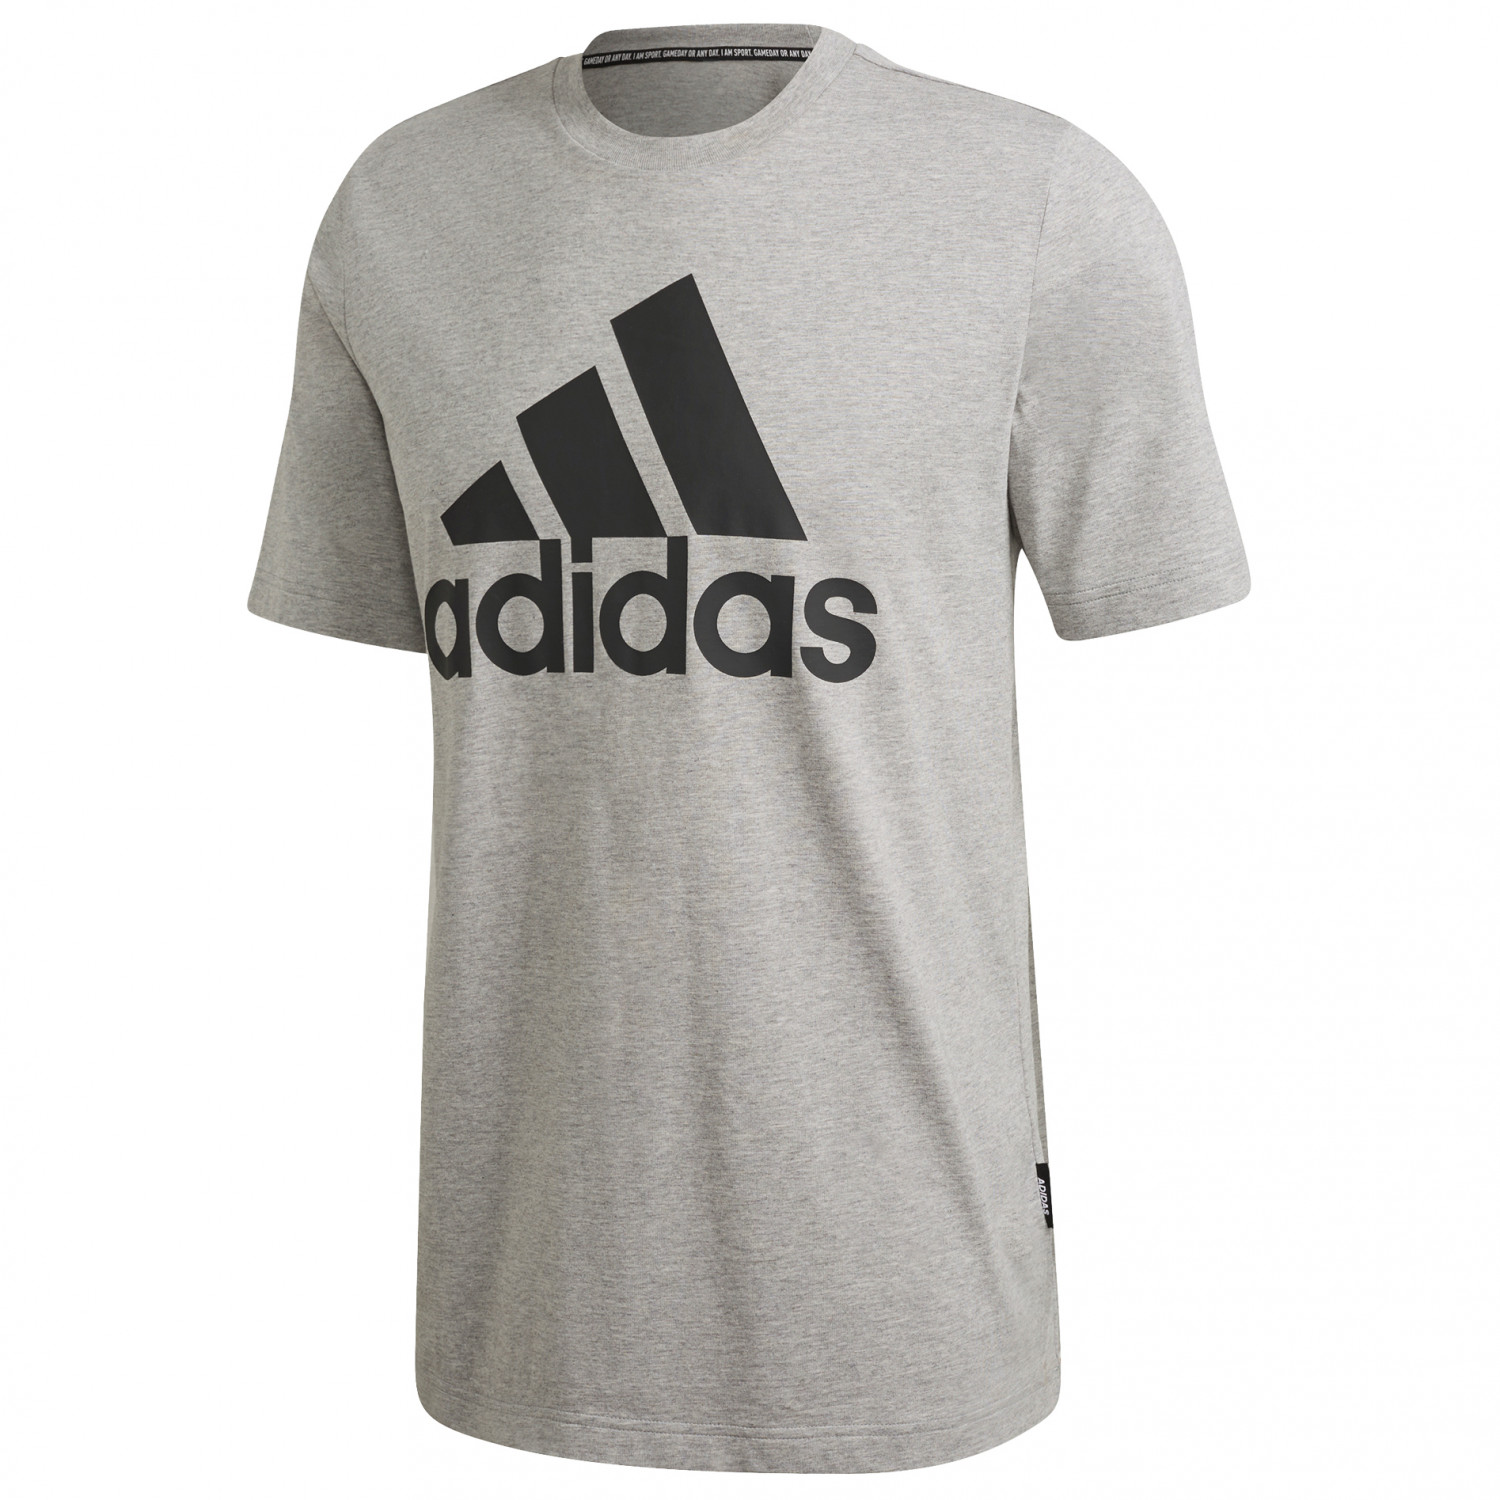 Adidas EMBLEM T Shirt Herren medium grey heather im Online